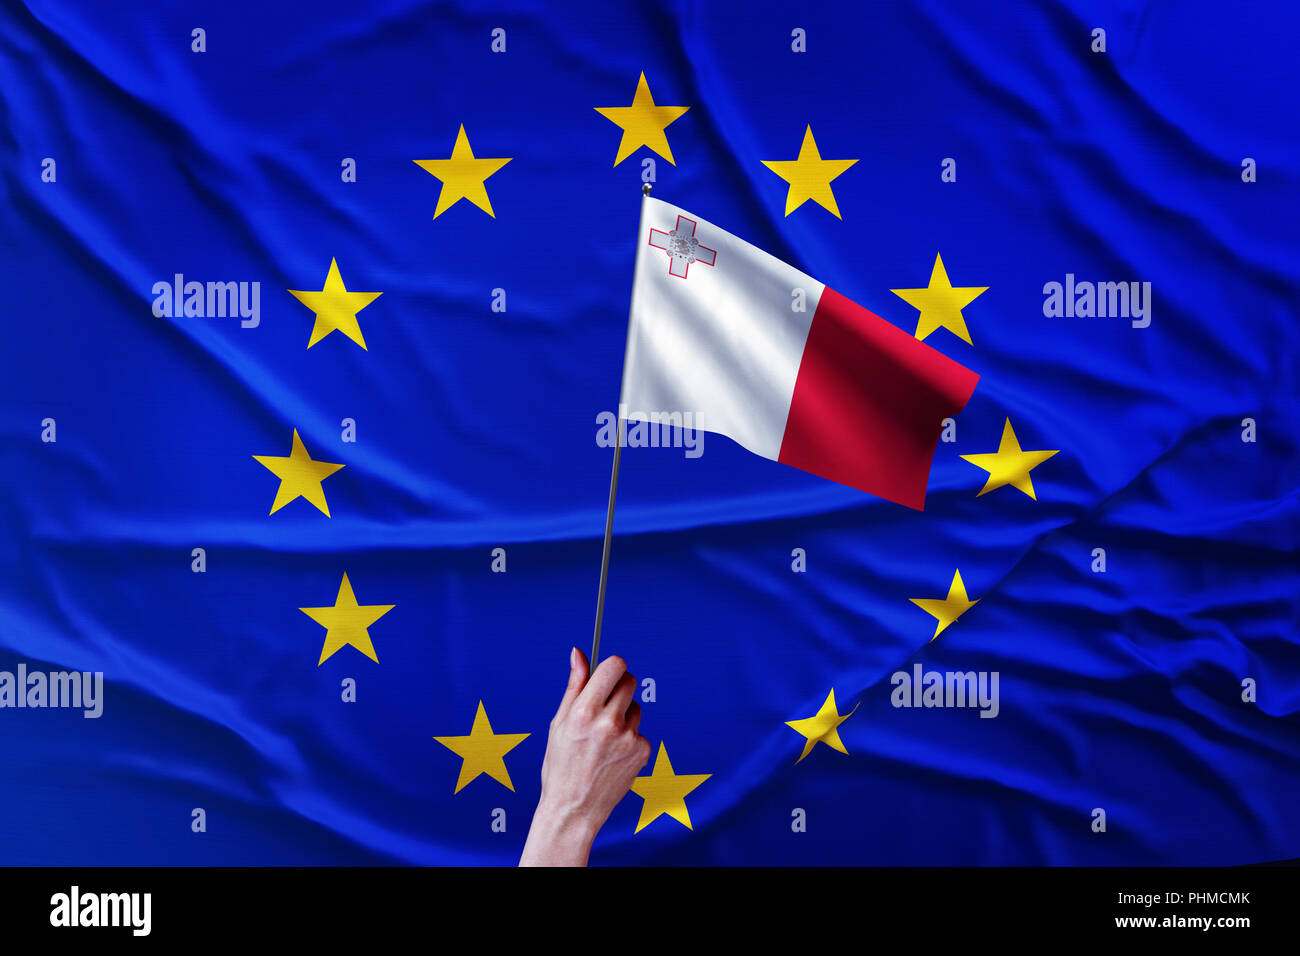 Flag of the European Union and Malta - Stock Image